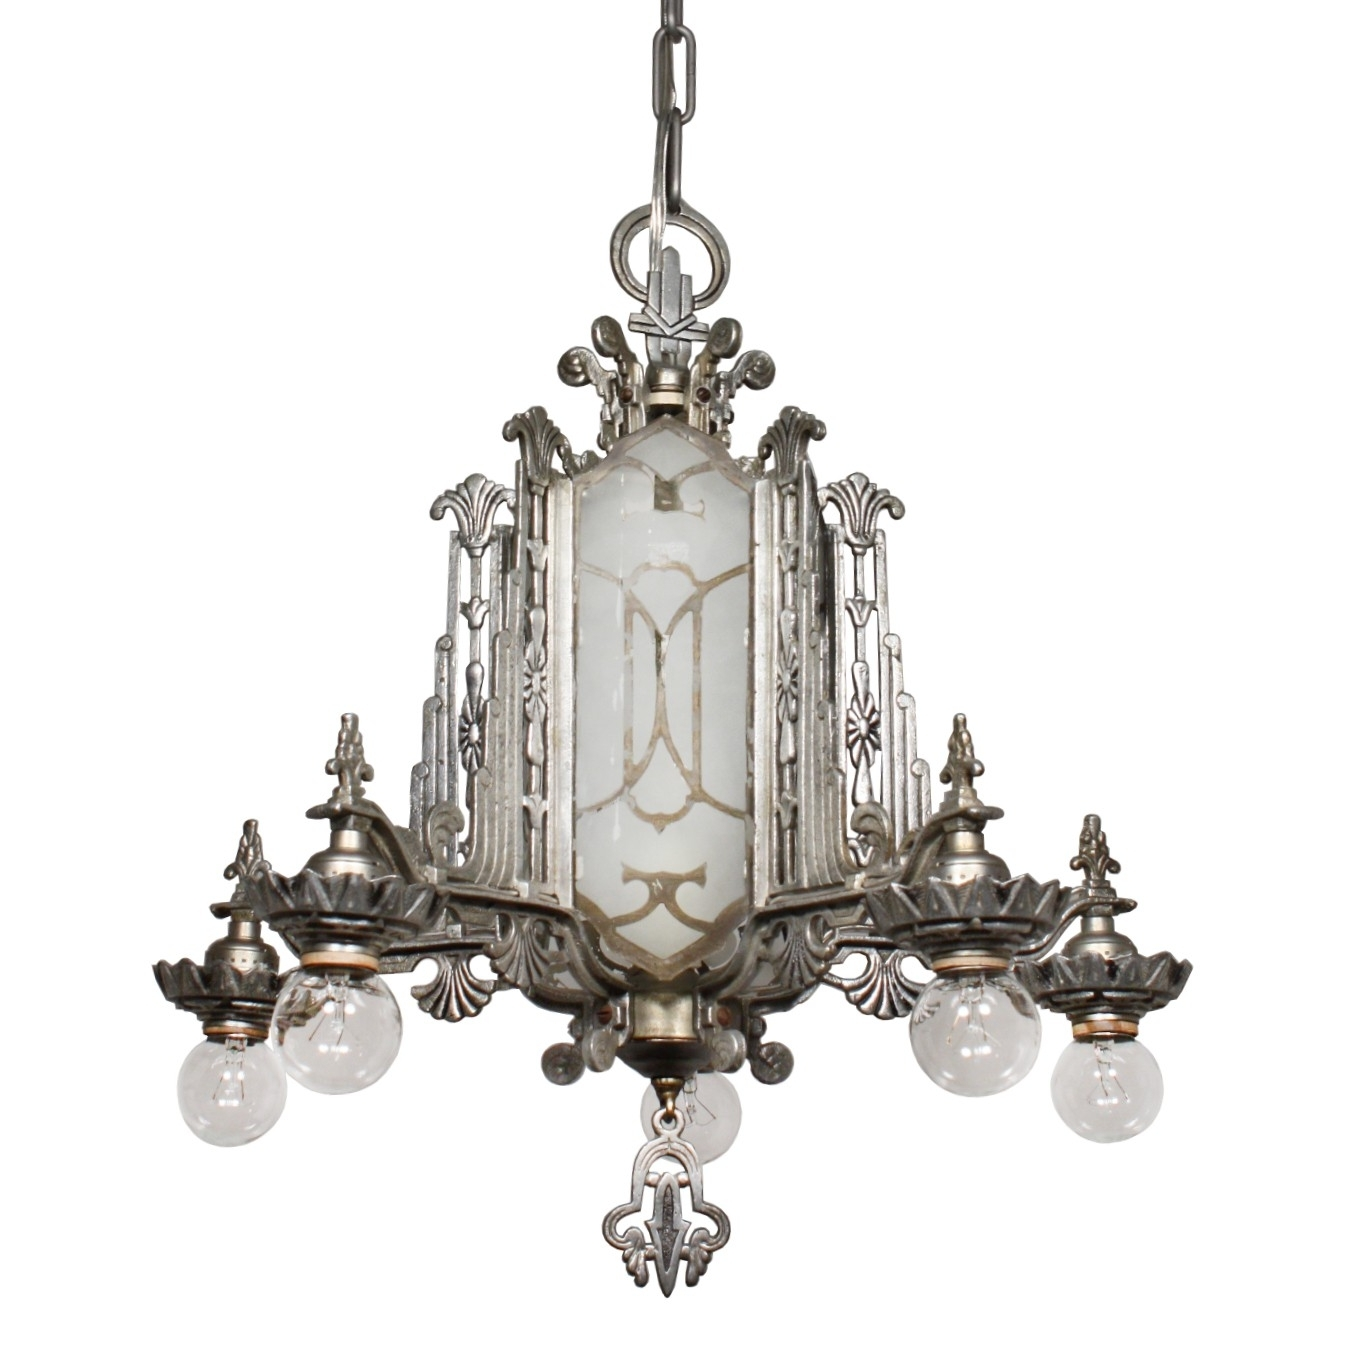 Most Recently Released Mirrored Chandelier Throughout Magnificent Antique Art Deco Chandelier, Mirrored And Etched Glass (View 11 of 15)